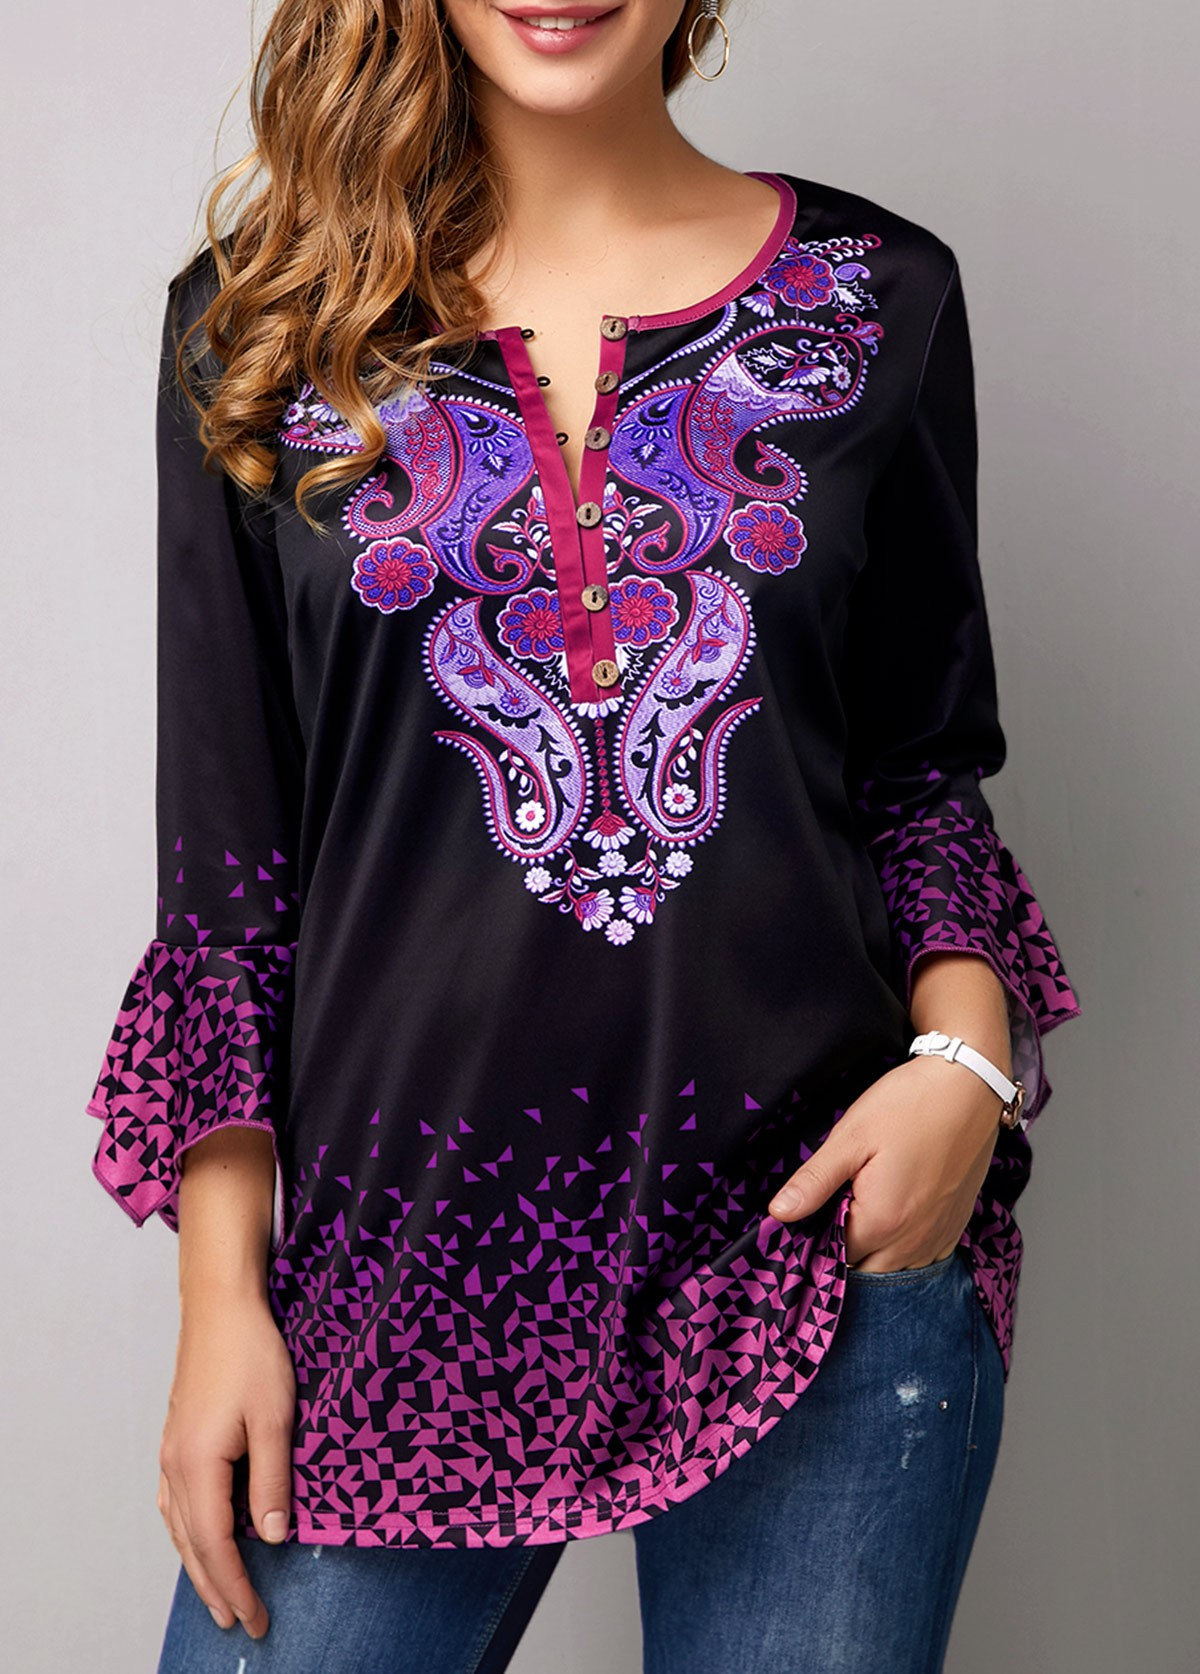 Flare Cuff Tribal Print Gradient Blouse